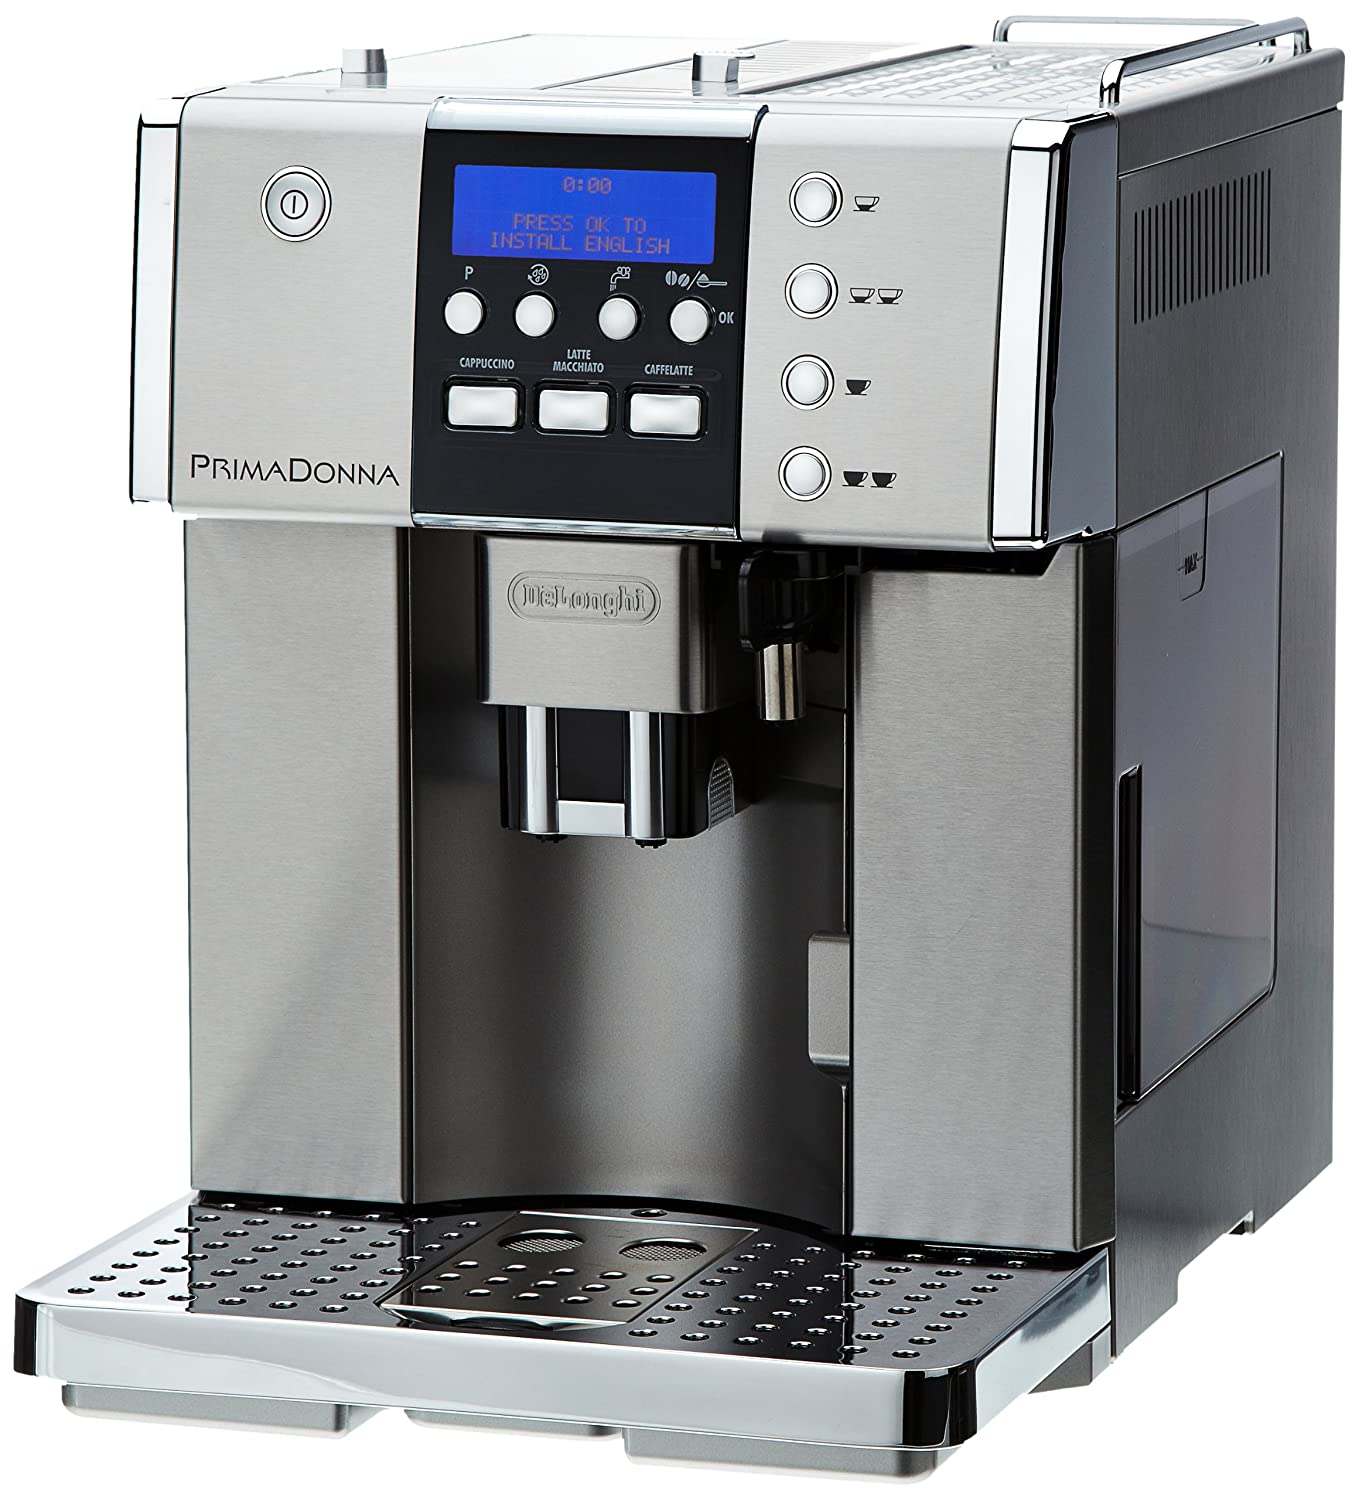 De'Longhi Prima Donna Fully Automatic Bean to Cup Espresso/Cappuccino  Machine ESAM6620, 15 Bar - Stainless Steel: Amazon.co.uk: Kitchen & Home